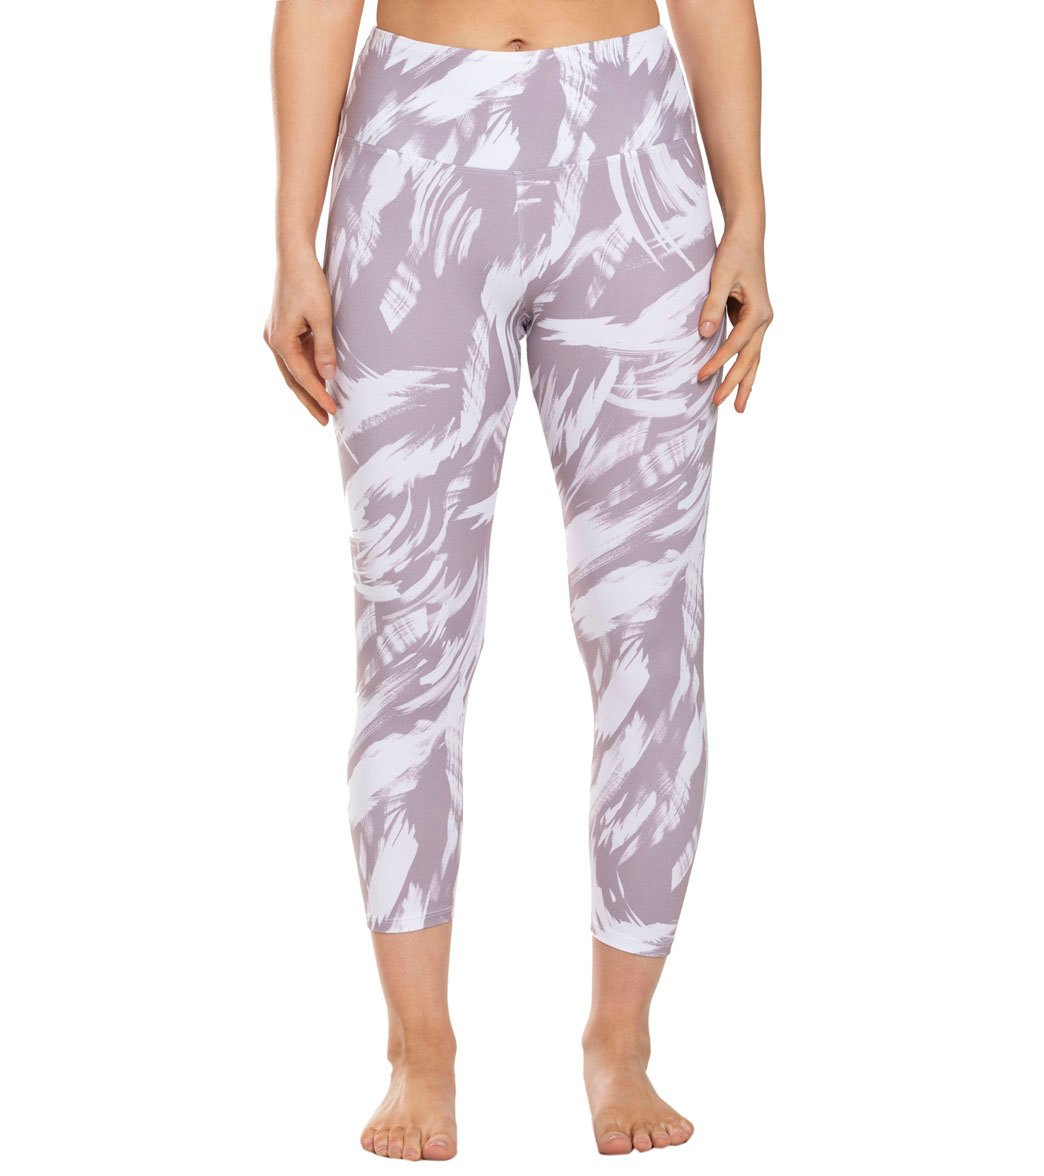 Balance Collection Printed High Waisted Yoga Capri Pants - Quail Invert Brush Strokes Cotton